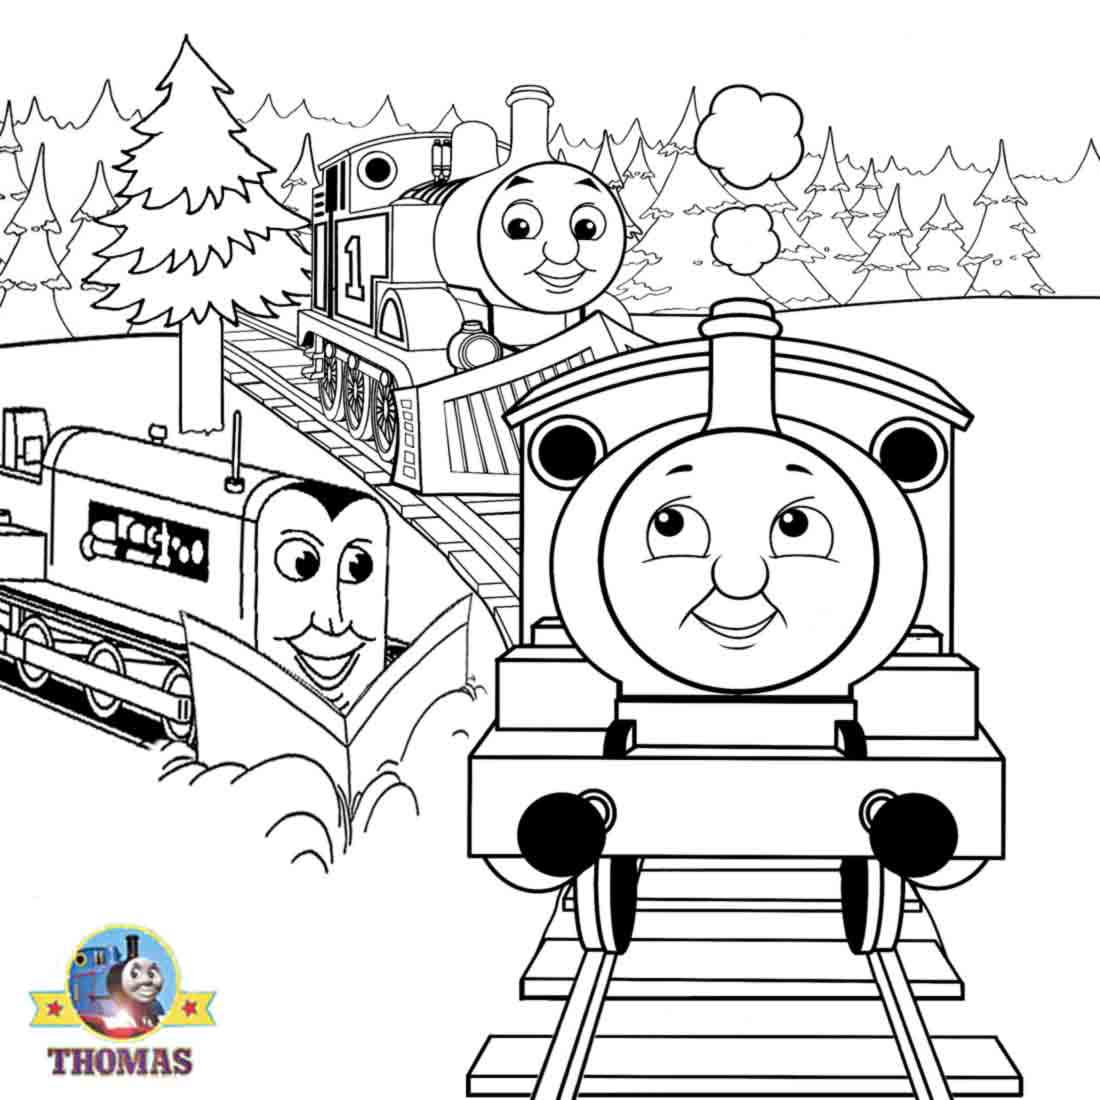 Drawn railroad thomas the tank engine Friends fun colouring and sheets